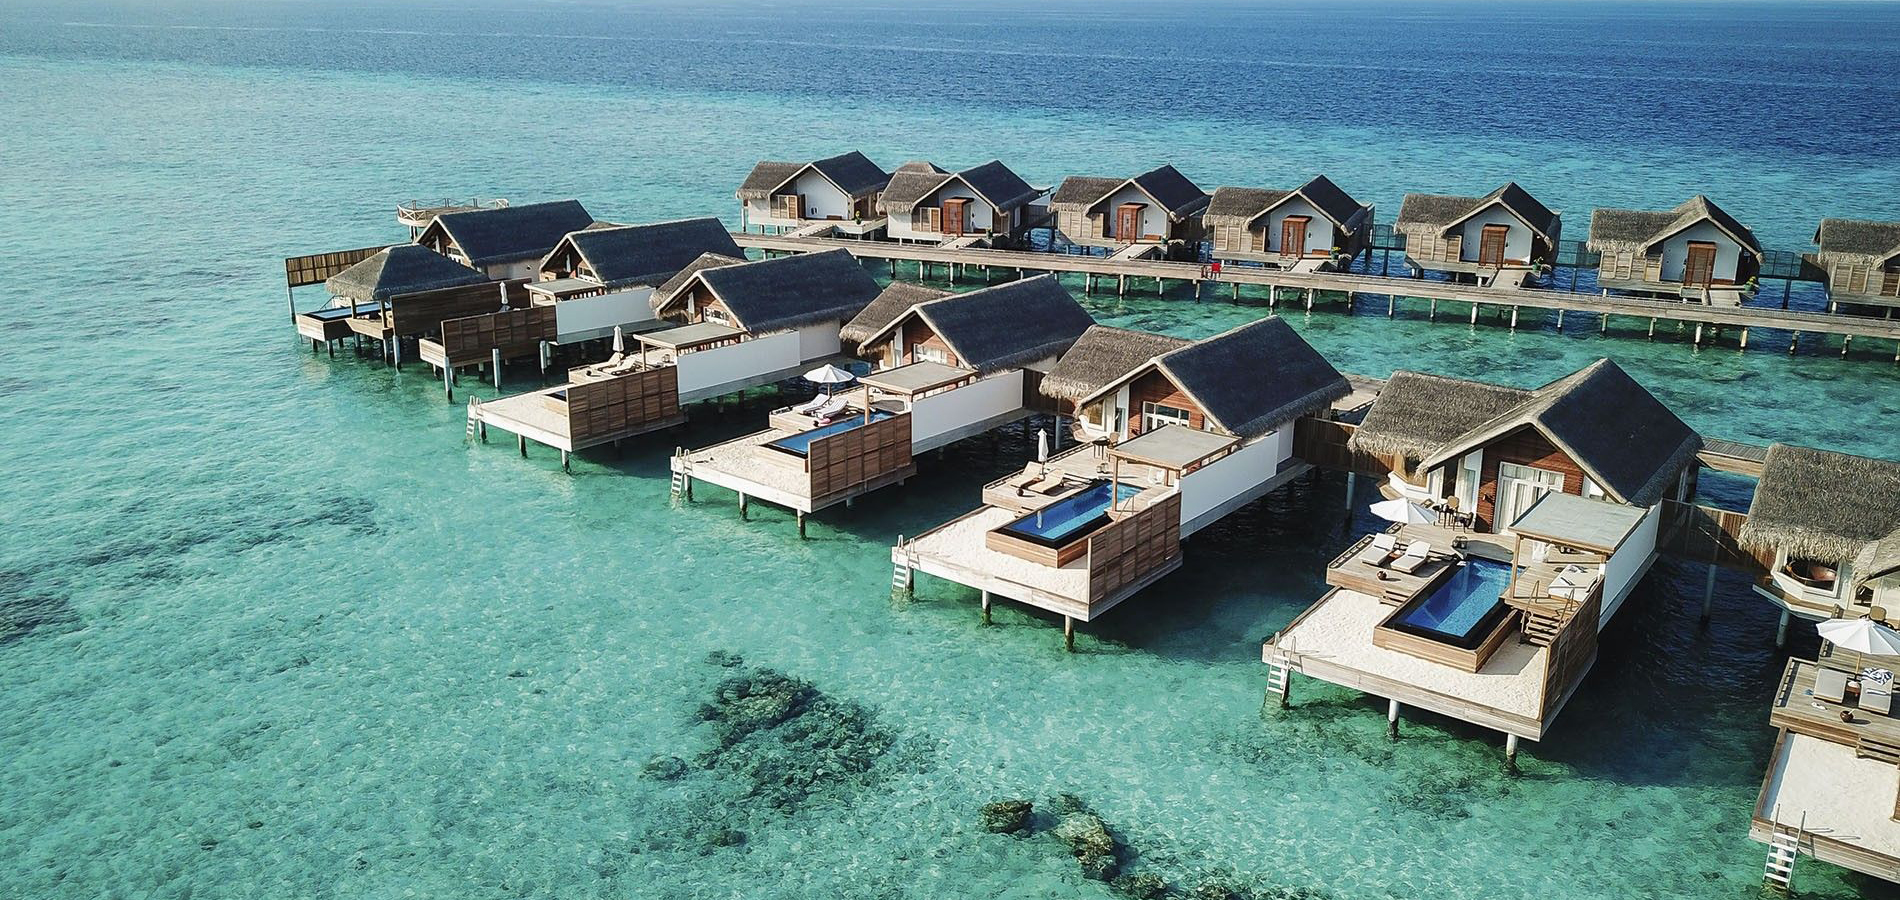 The Maldives Water Villa Experience - A Remedy for the Hectic Life